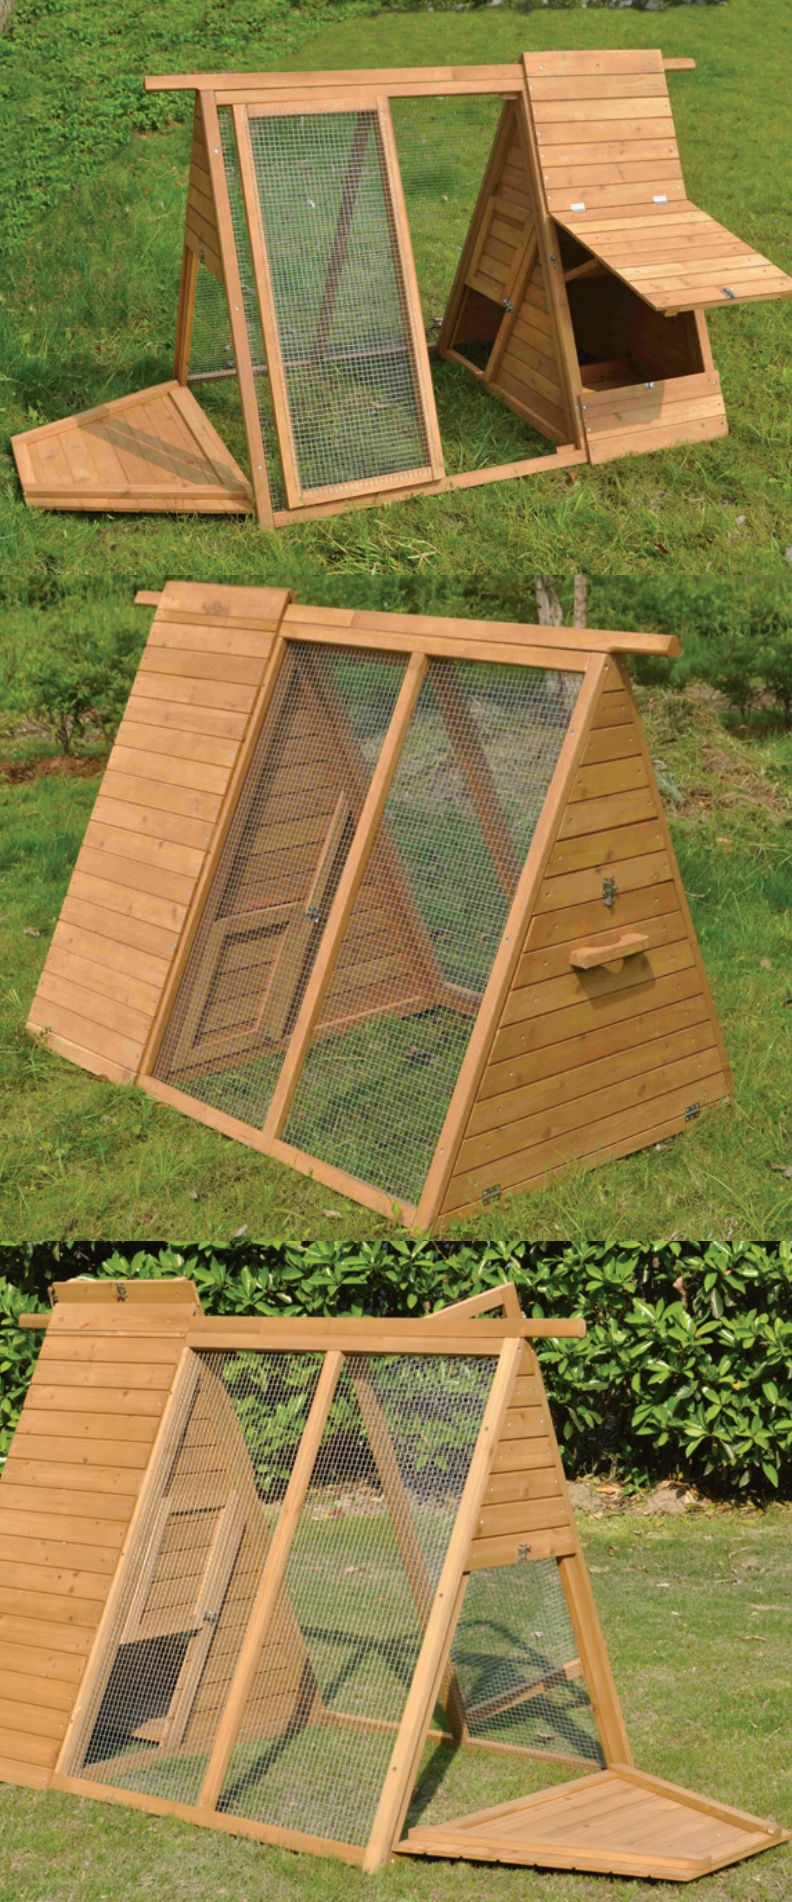 A Frame Wooden Chicken Coop With Run 2 To 3 Hens Mobile